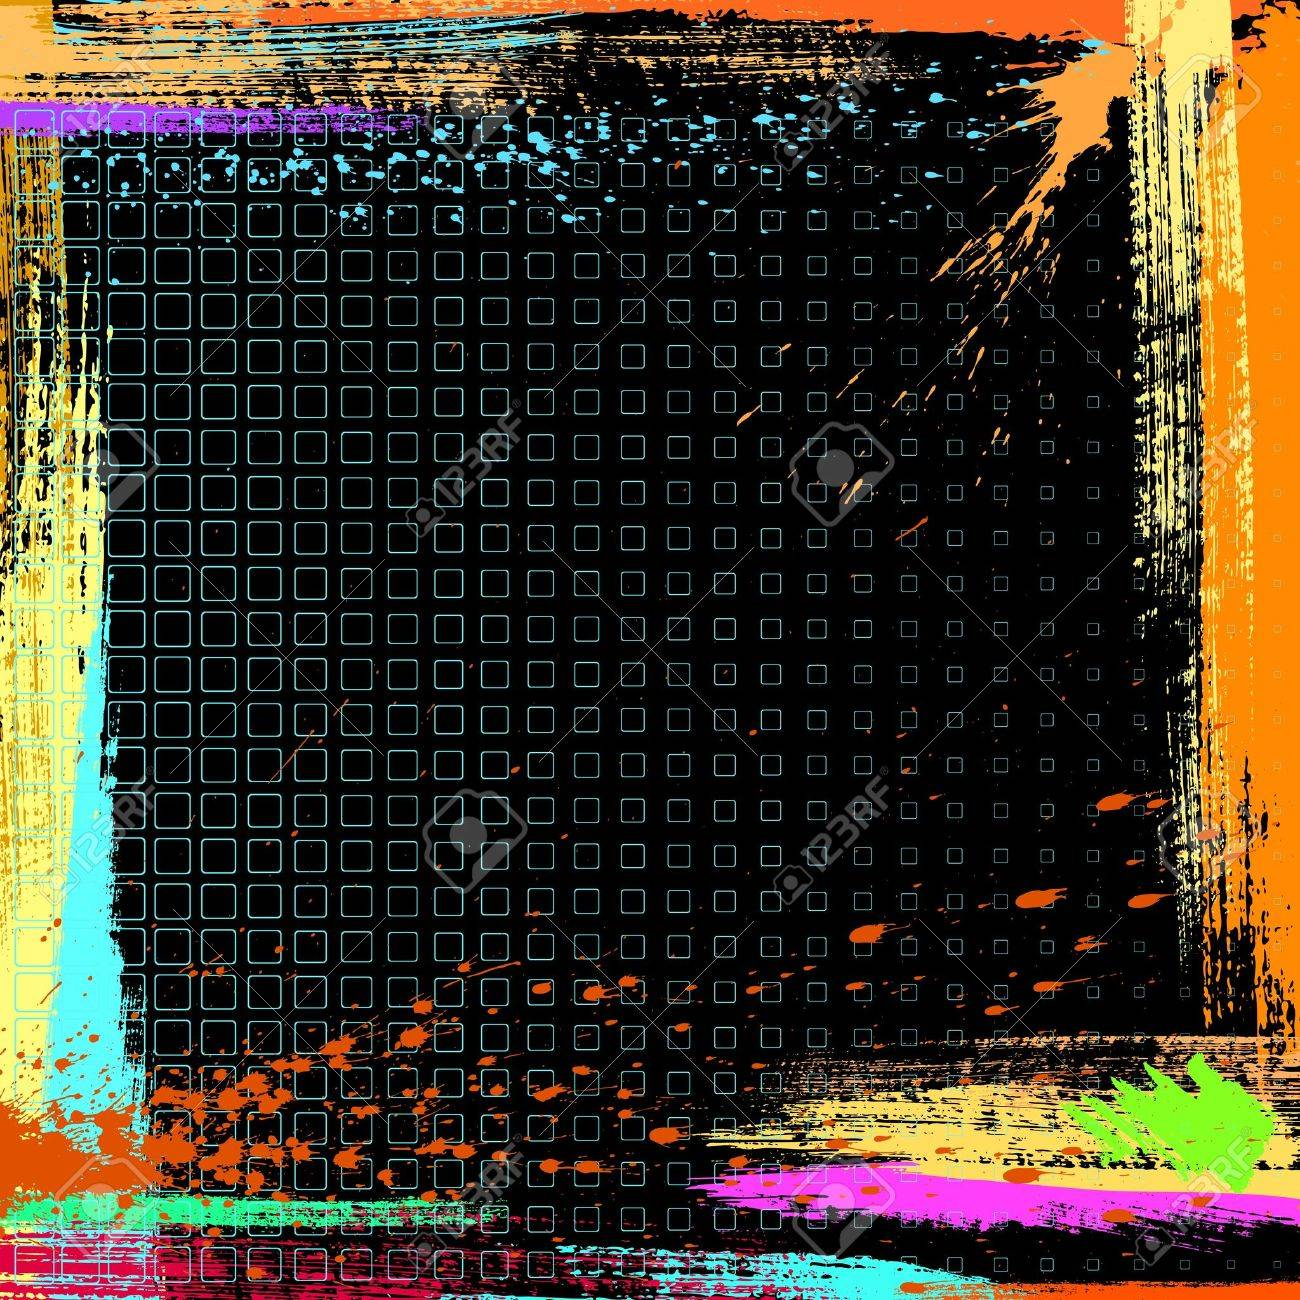 abstract grunge frame made from artistic effect dry brush - 9344539